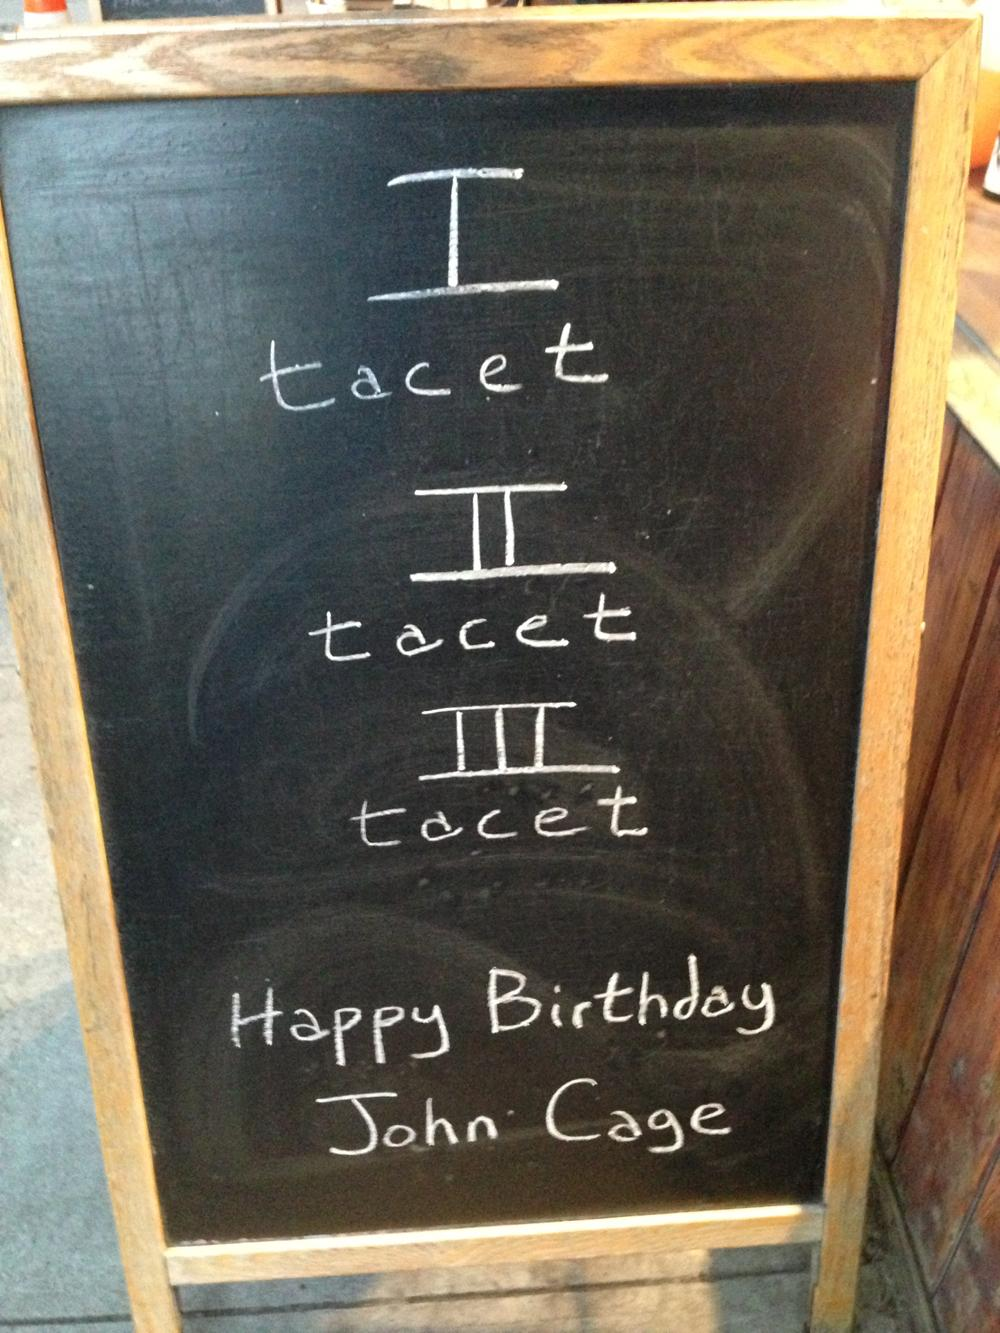 A Park Slope wine shop had an especially clever birthday wish for avant-garde composer John Cage, who would've turned 101 yesterday.